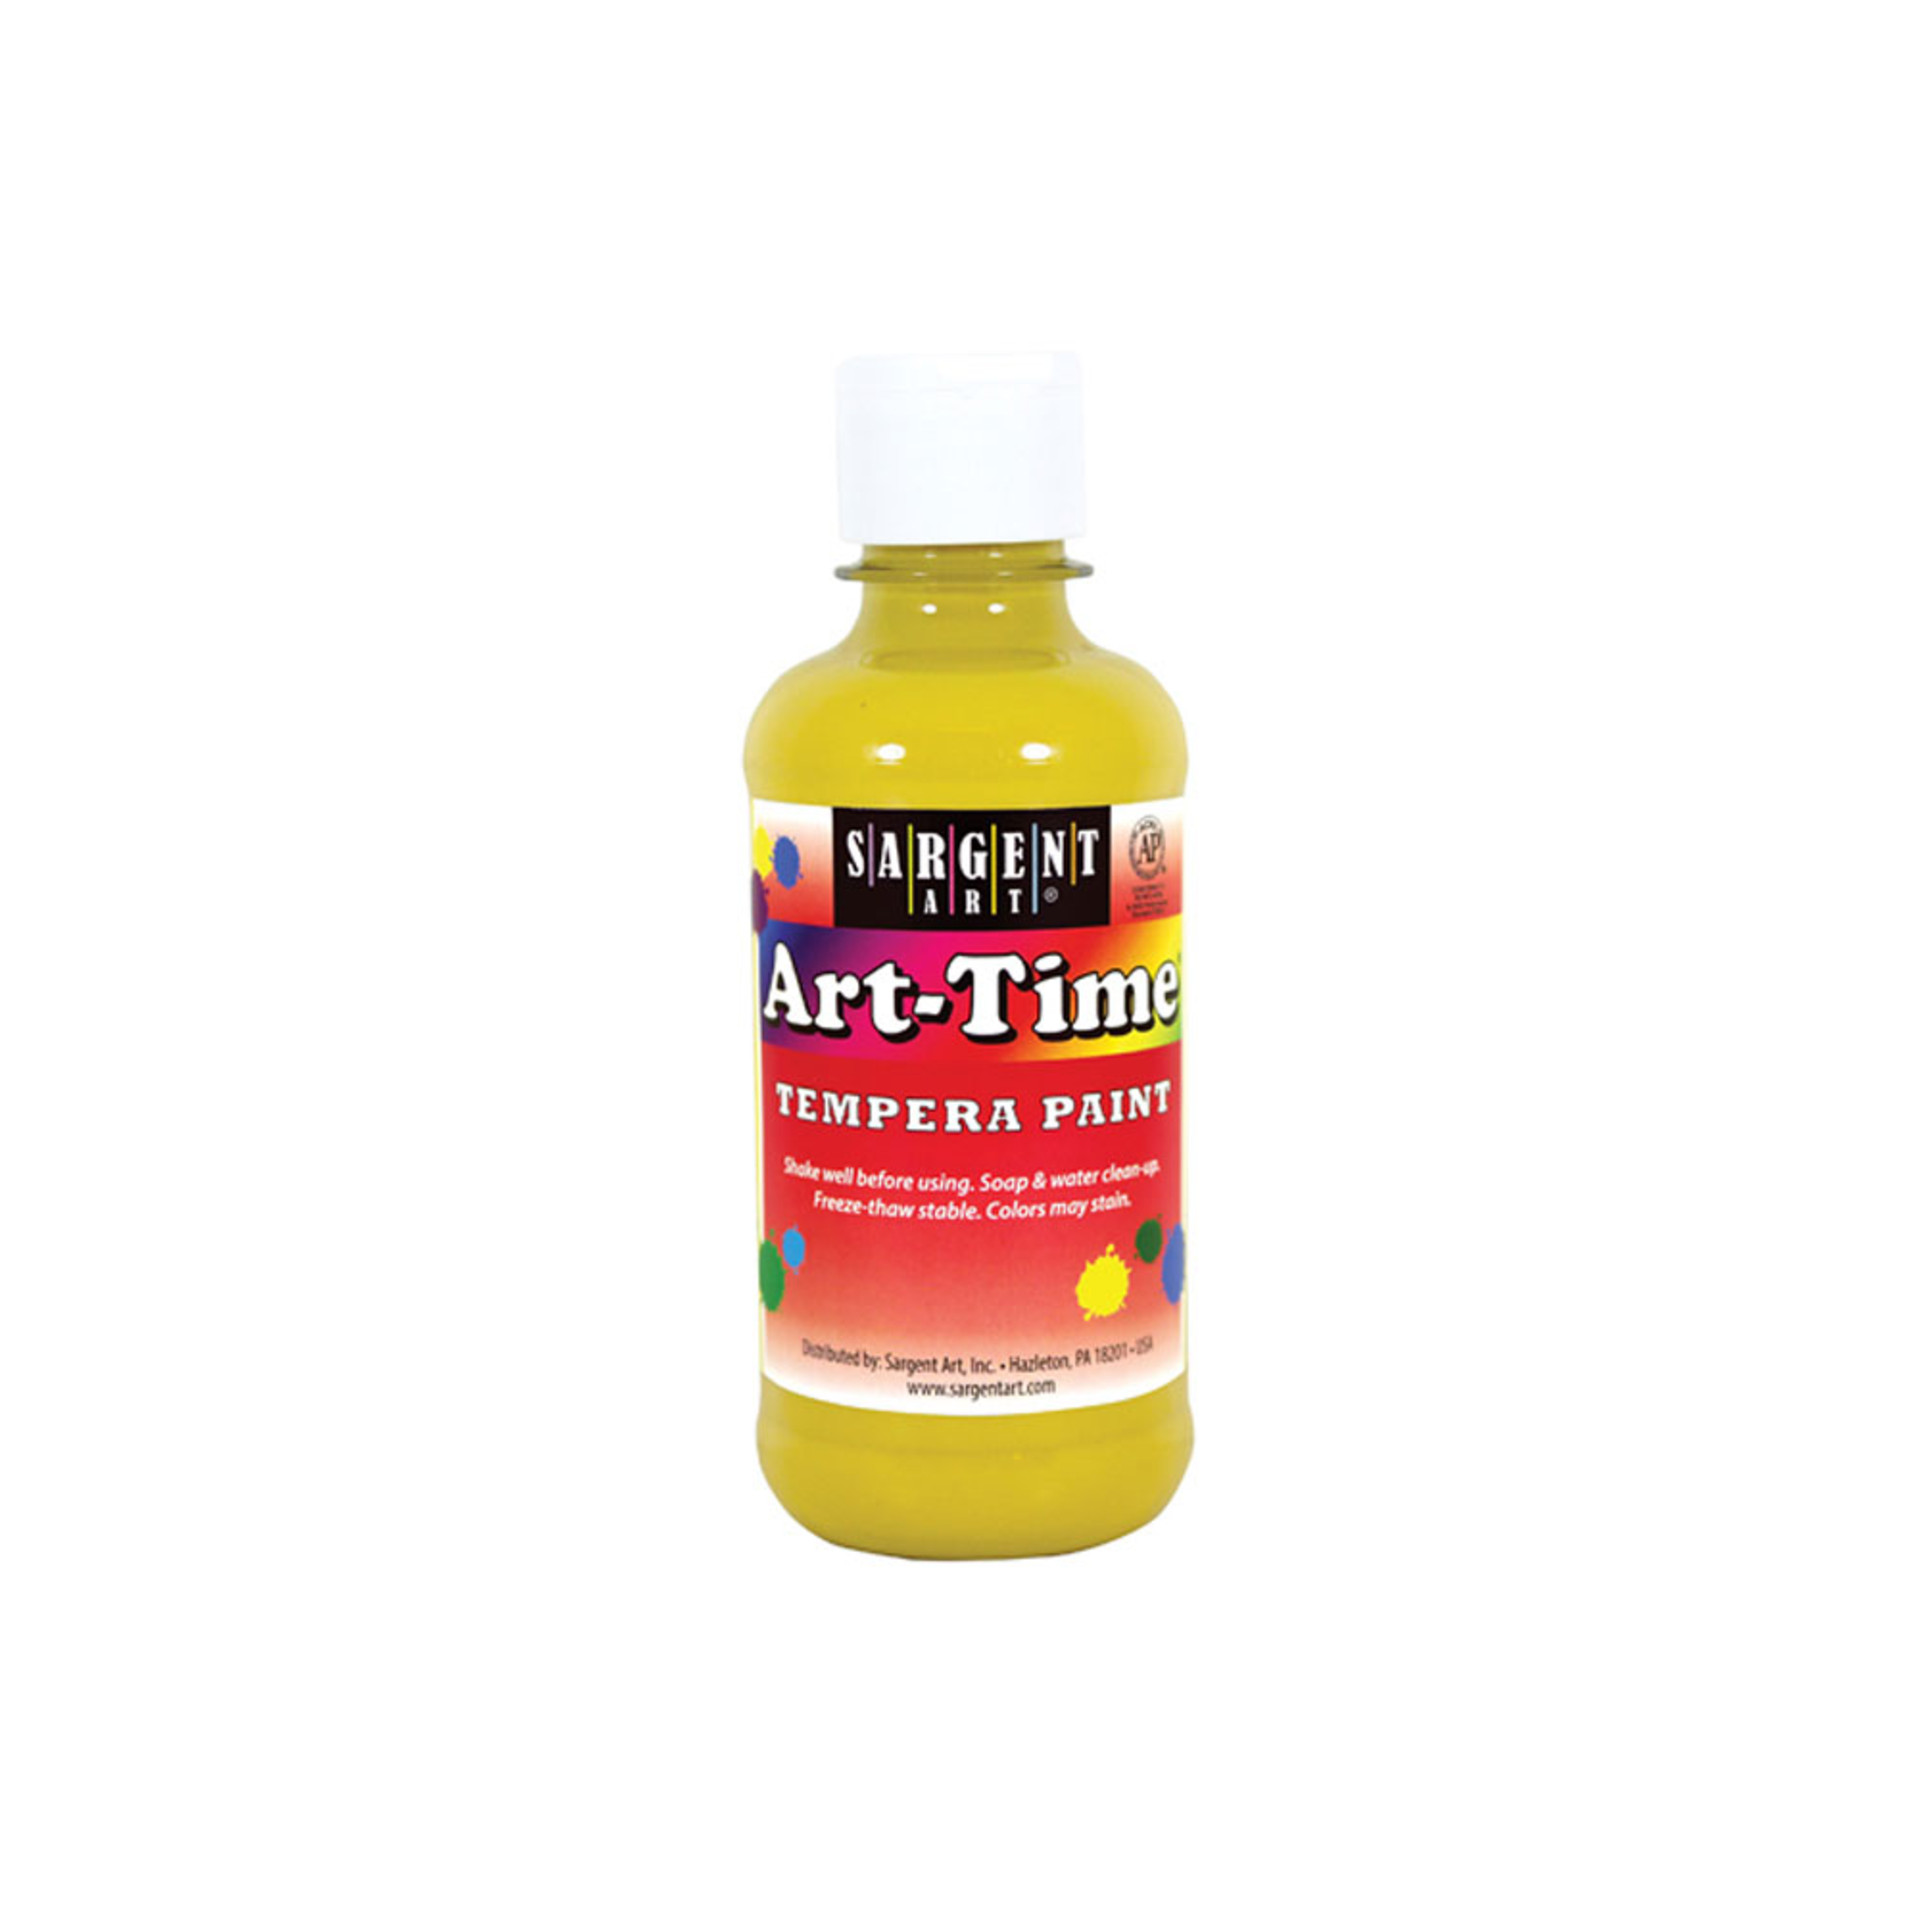 Sargent Art Time 8oz. Tempera Paint – Yellow